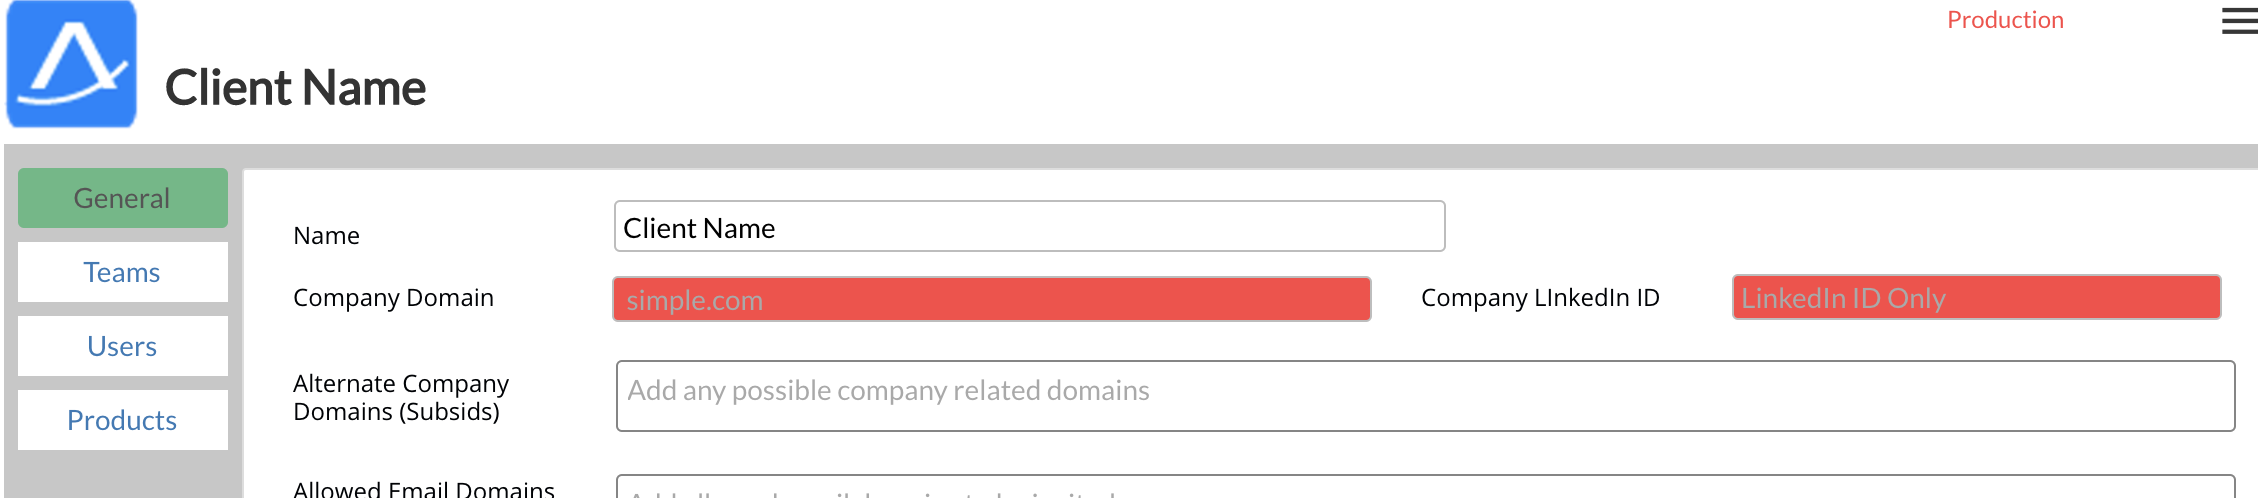 Client Name  General  Teams  Users  Products  Name  Company Domain  Alternate Company  Domains (Subsids)  Client Name  simnle.com  Add any possible company related domains  Company Llnkedln ID  Production  Linkedln ID Onlv